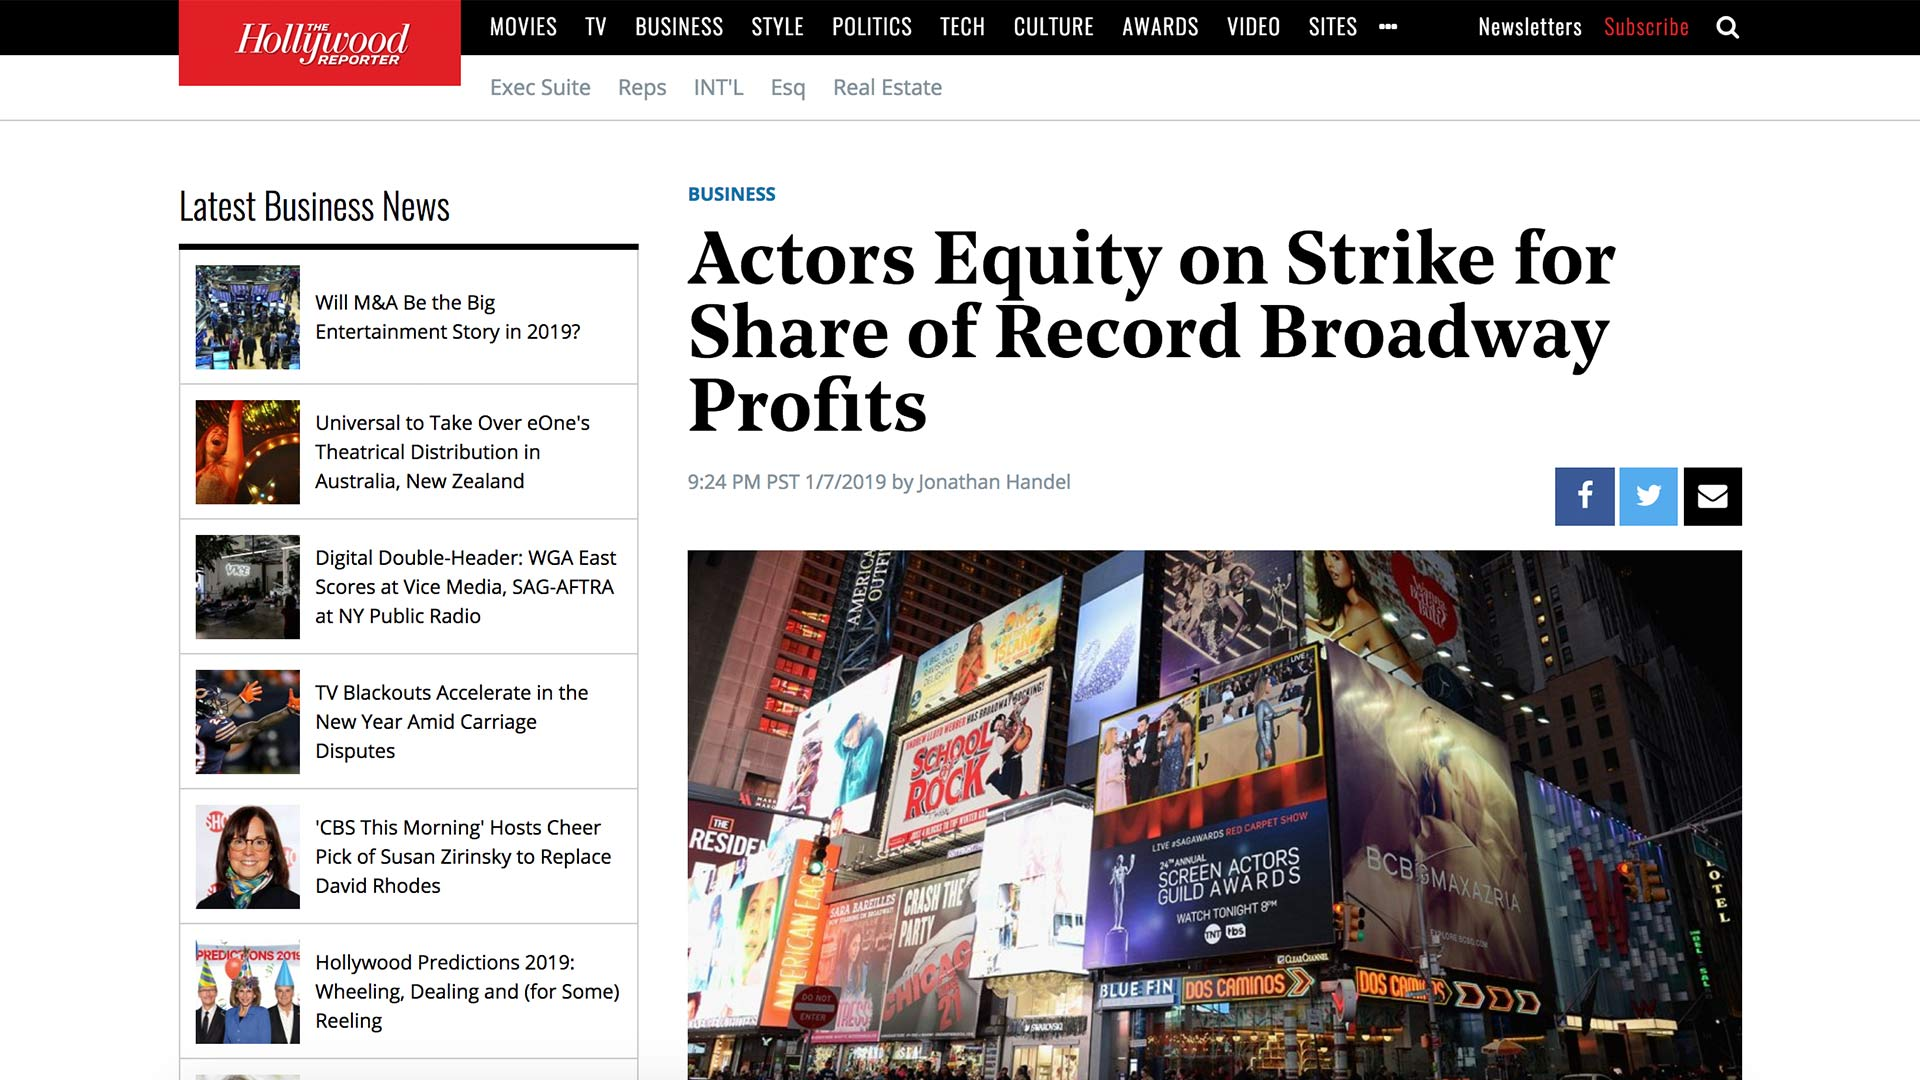 Fairness Rocks News Actors Equity on Strike for Share of Record Broadway Profits